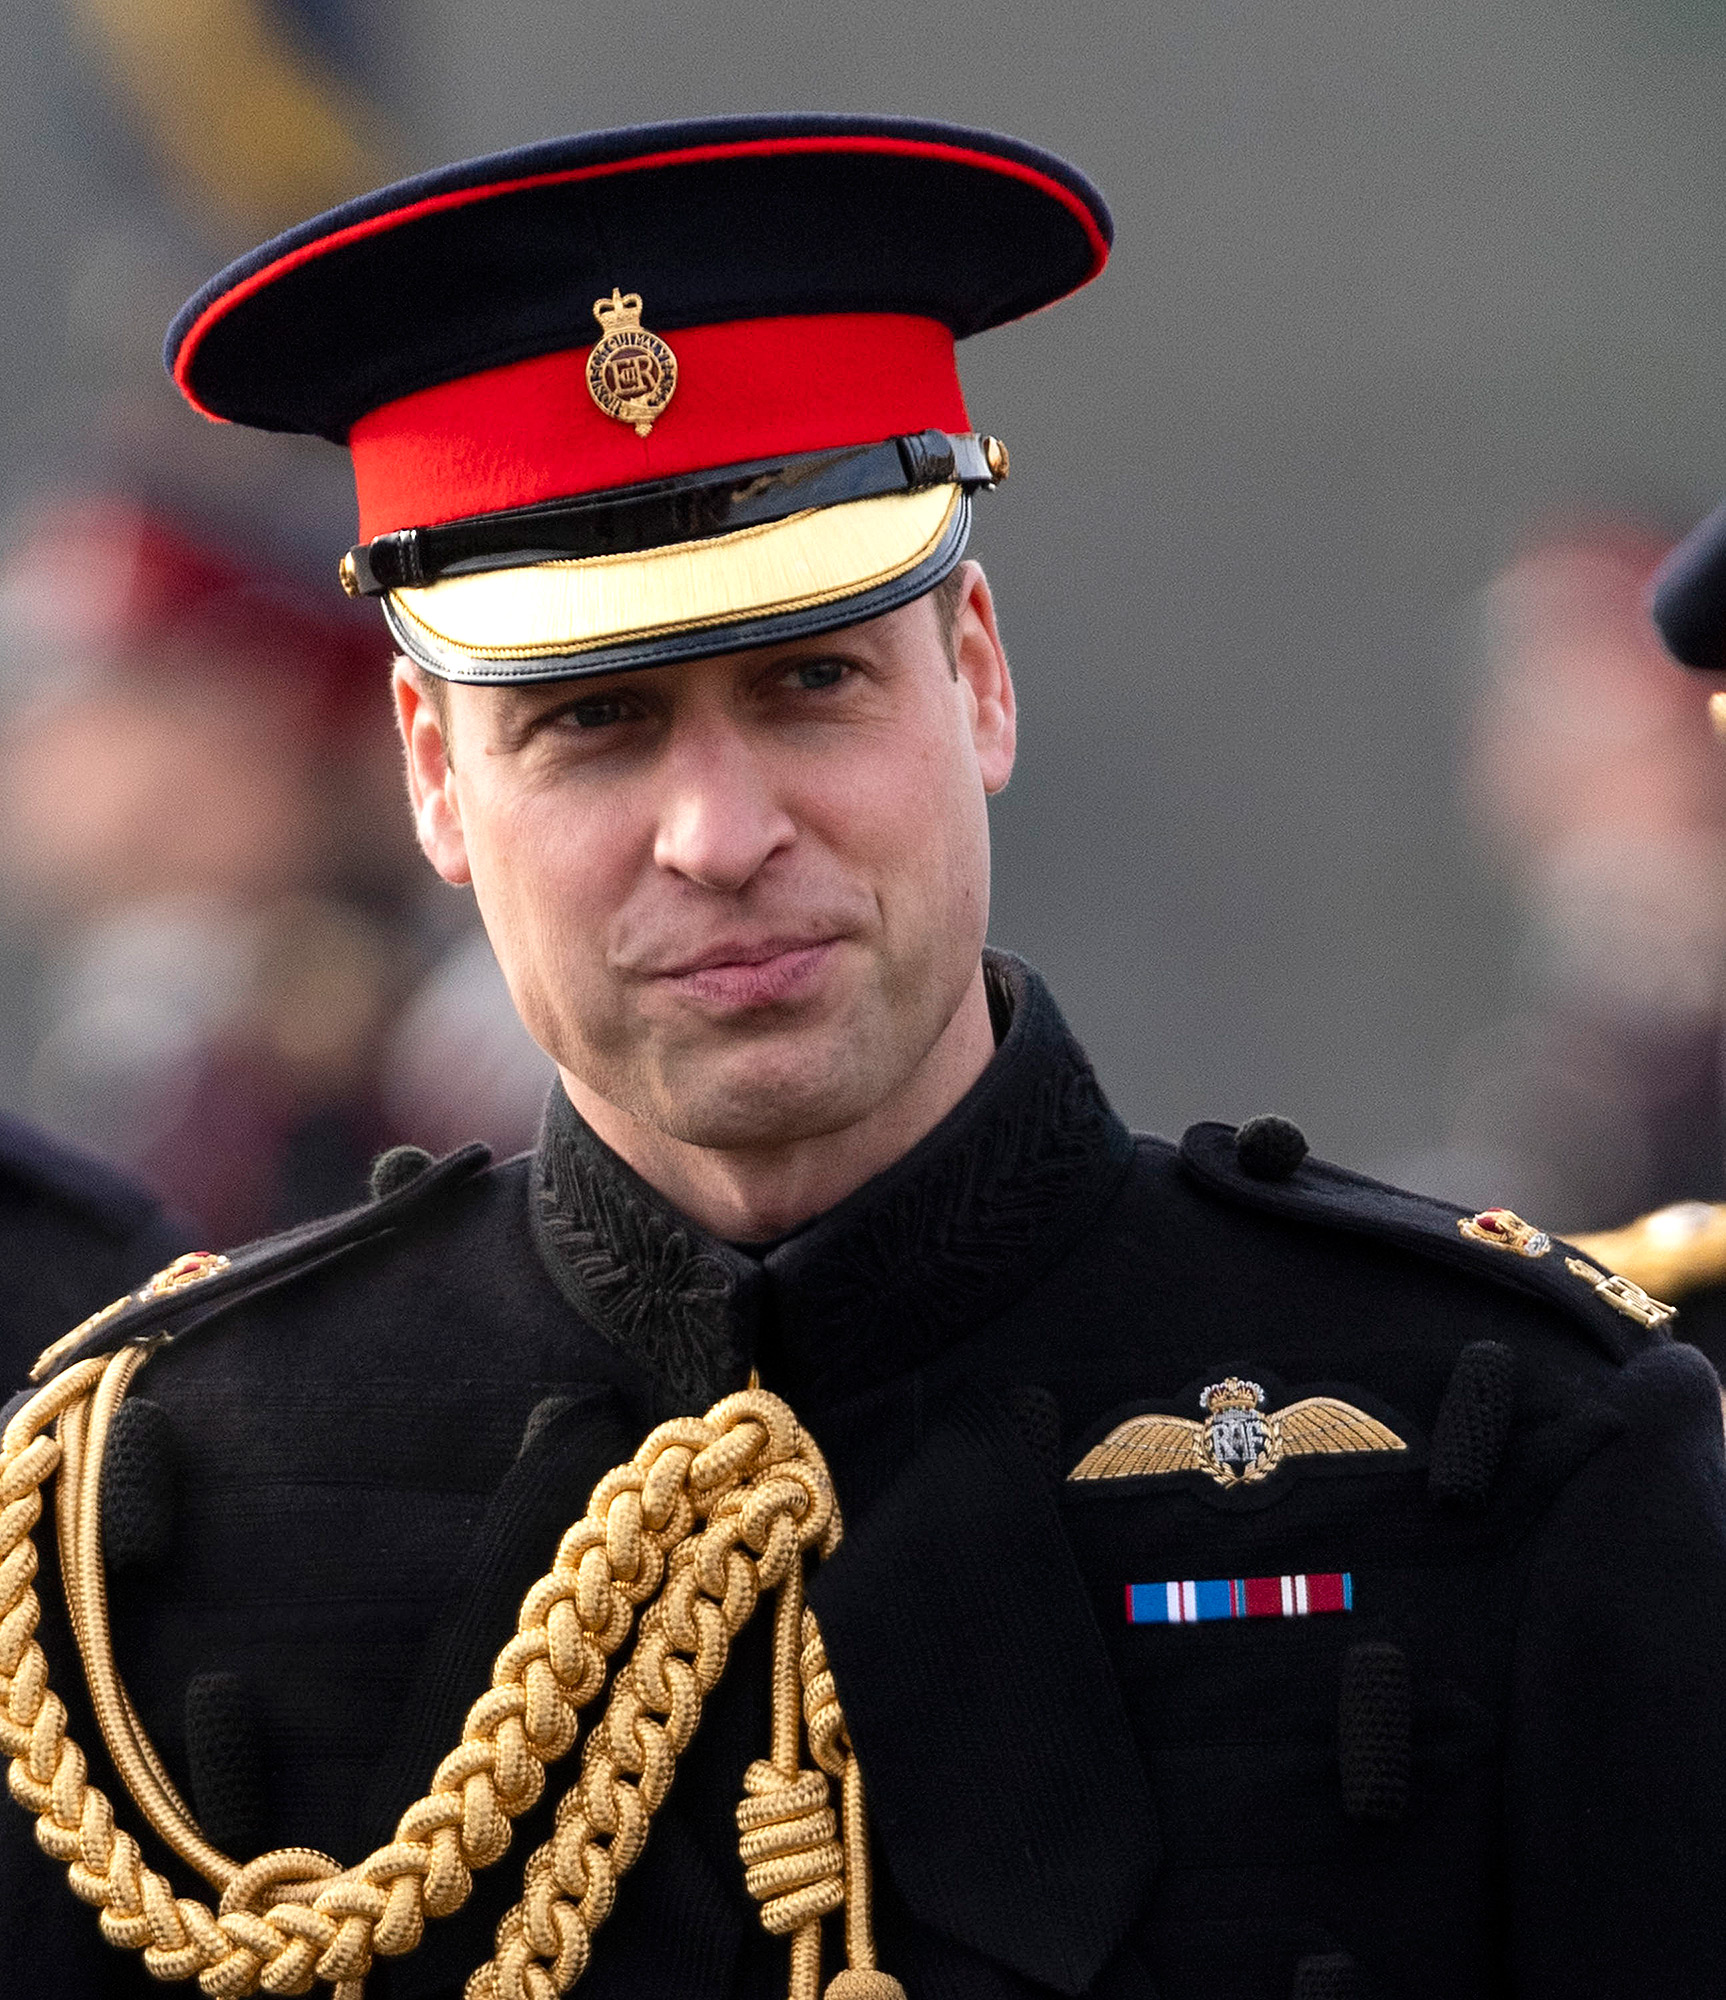 The Duke Of Cambridge Attends The Soverign's Day Parade